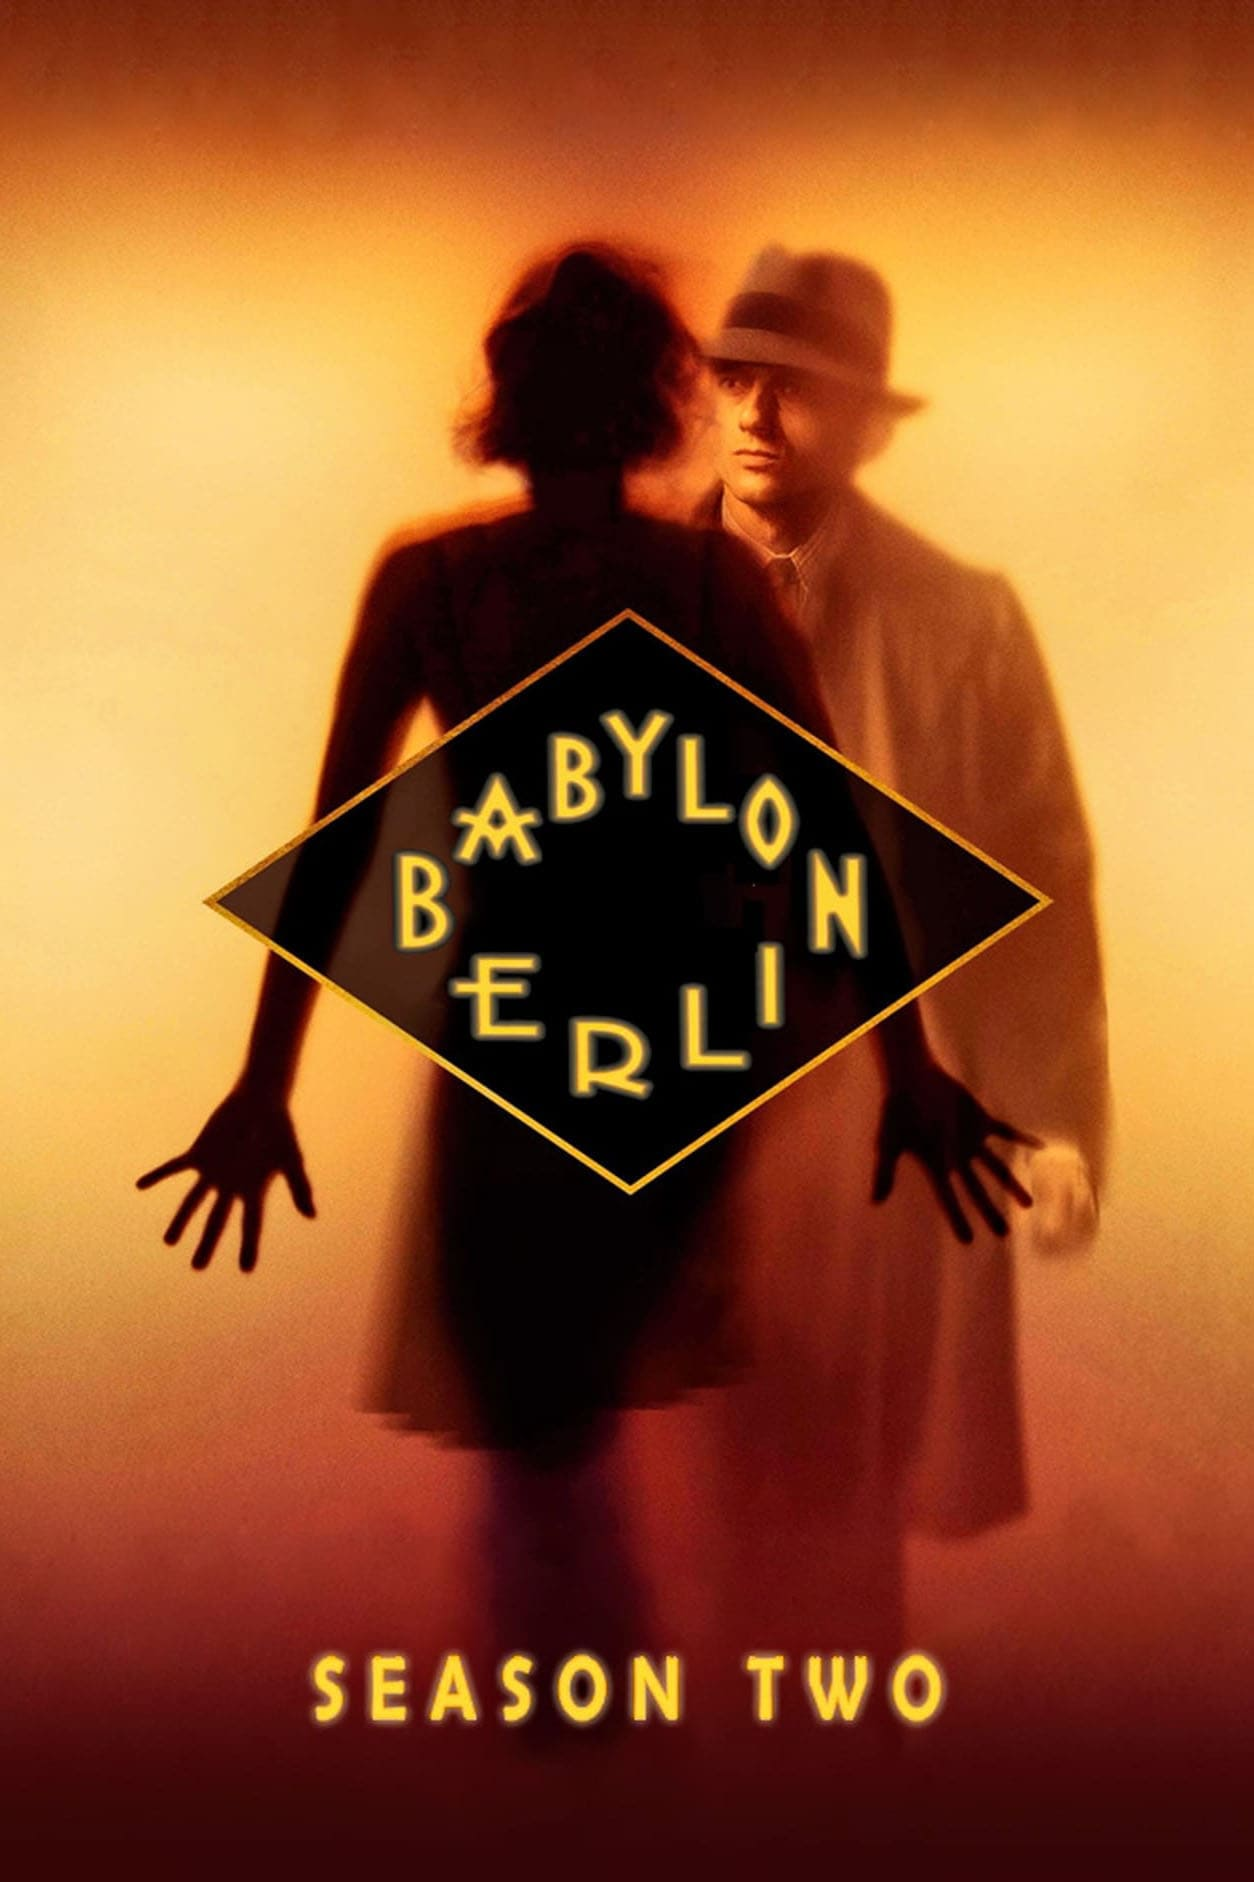 Babylon Berlin Season 2